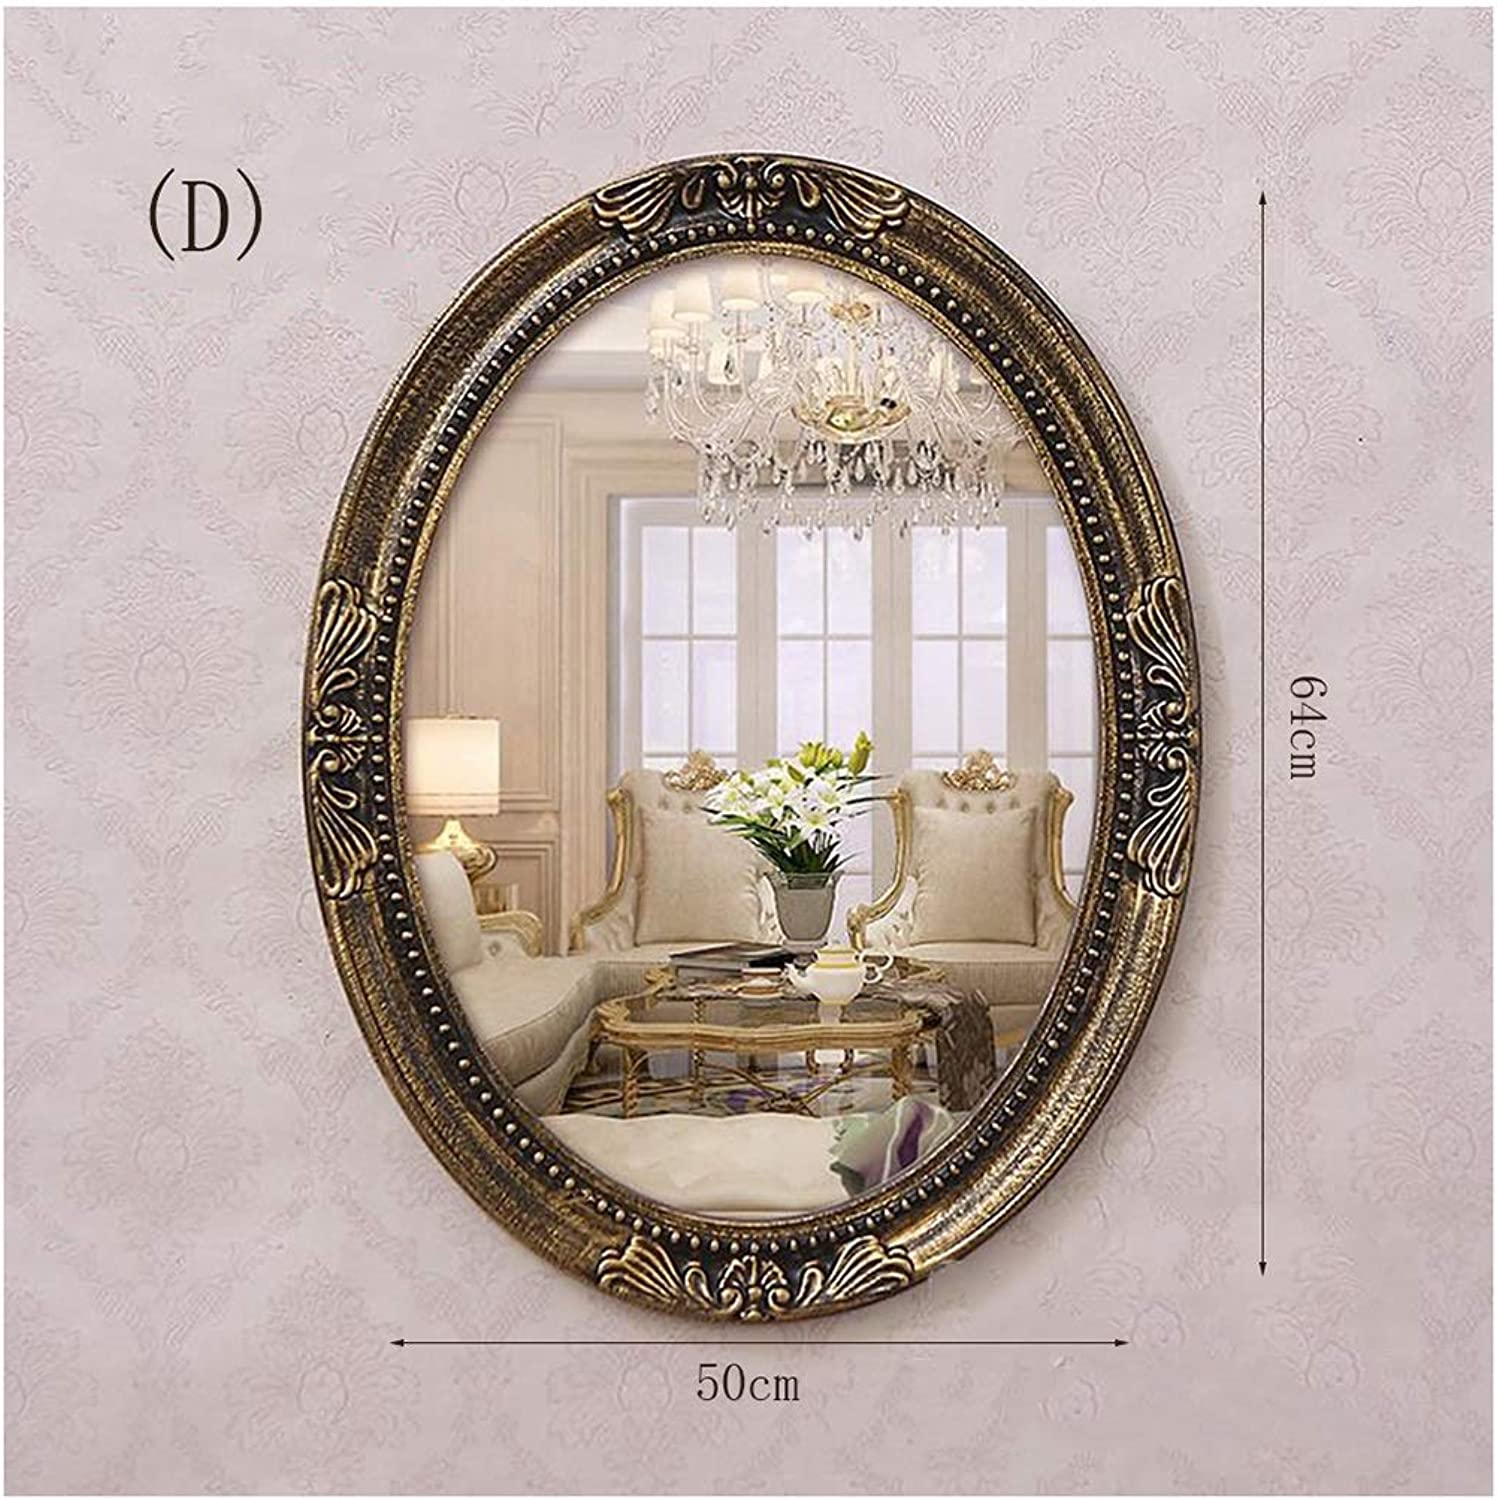 YYF French Retro Living Room Bathroom Wall Hanging Decorative Mirror 58cm20cm (20 inches  23 inches) (Size   D)